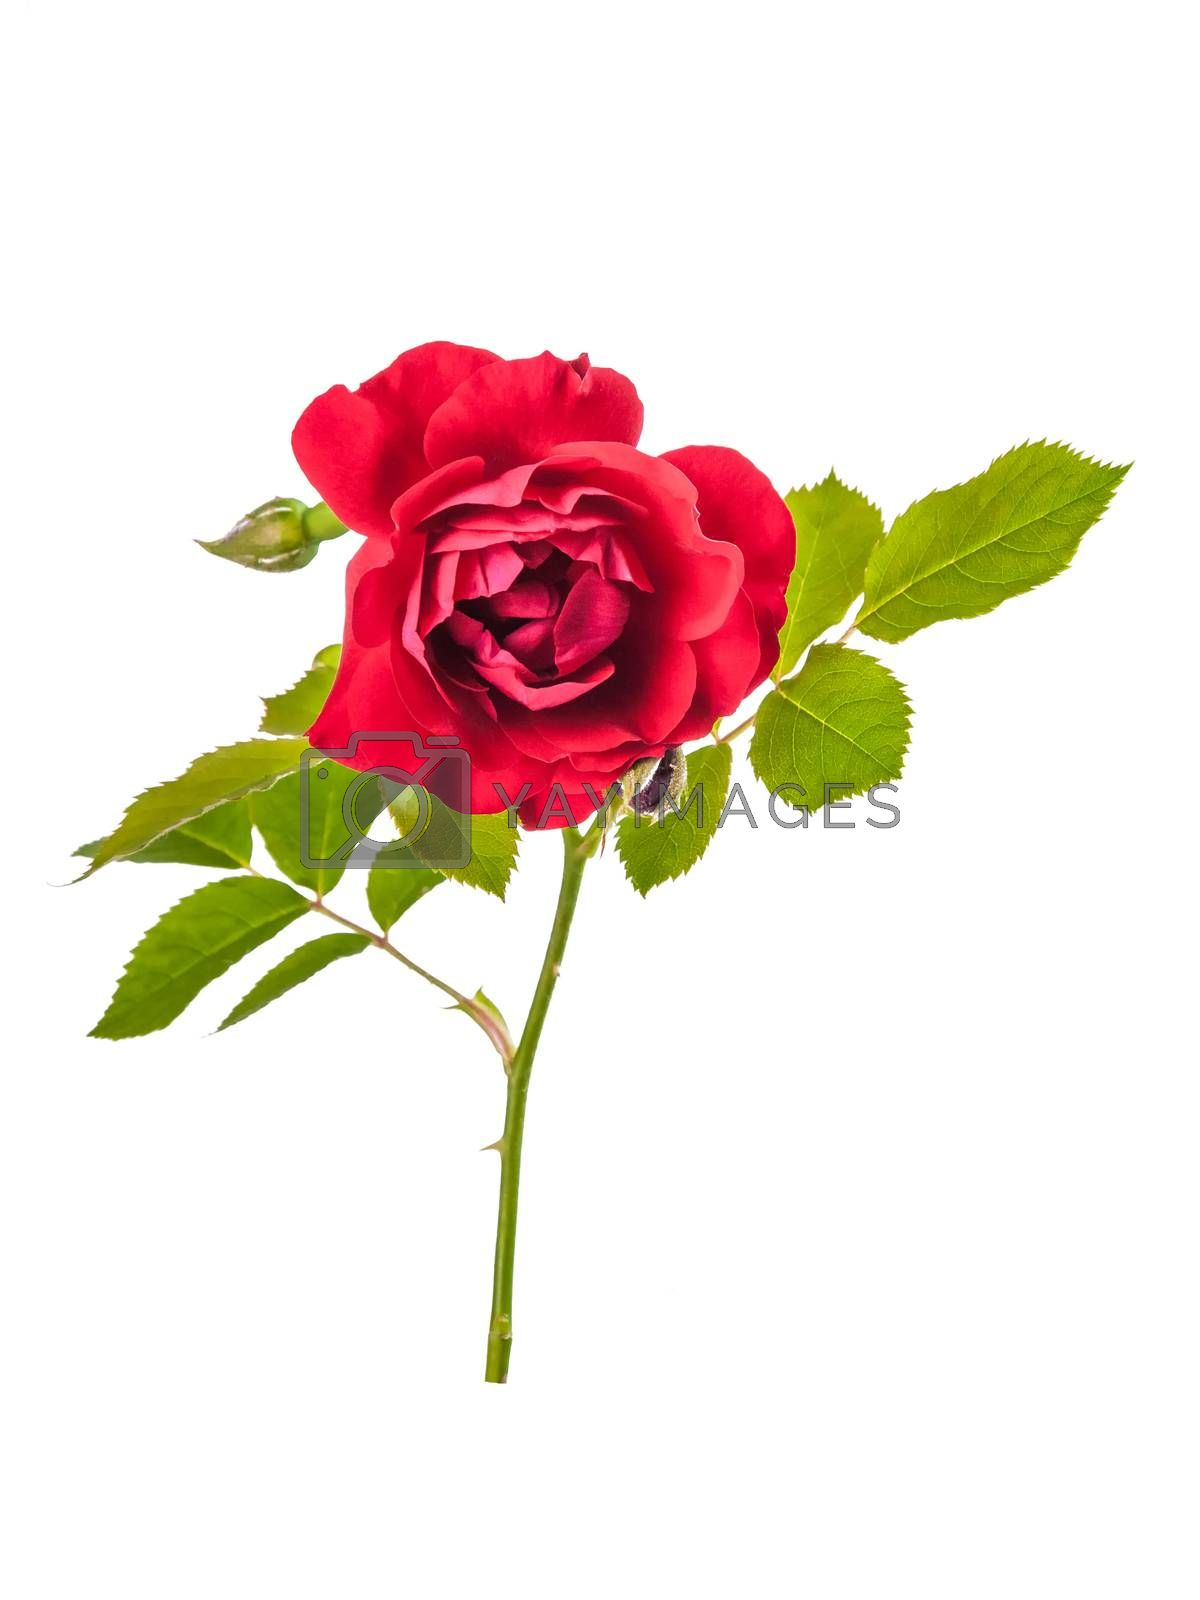 Rose red flowers with leaves isolated on white backround